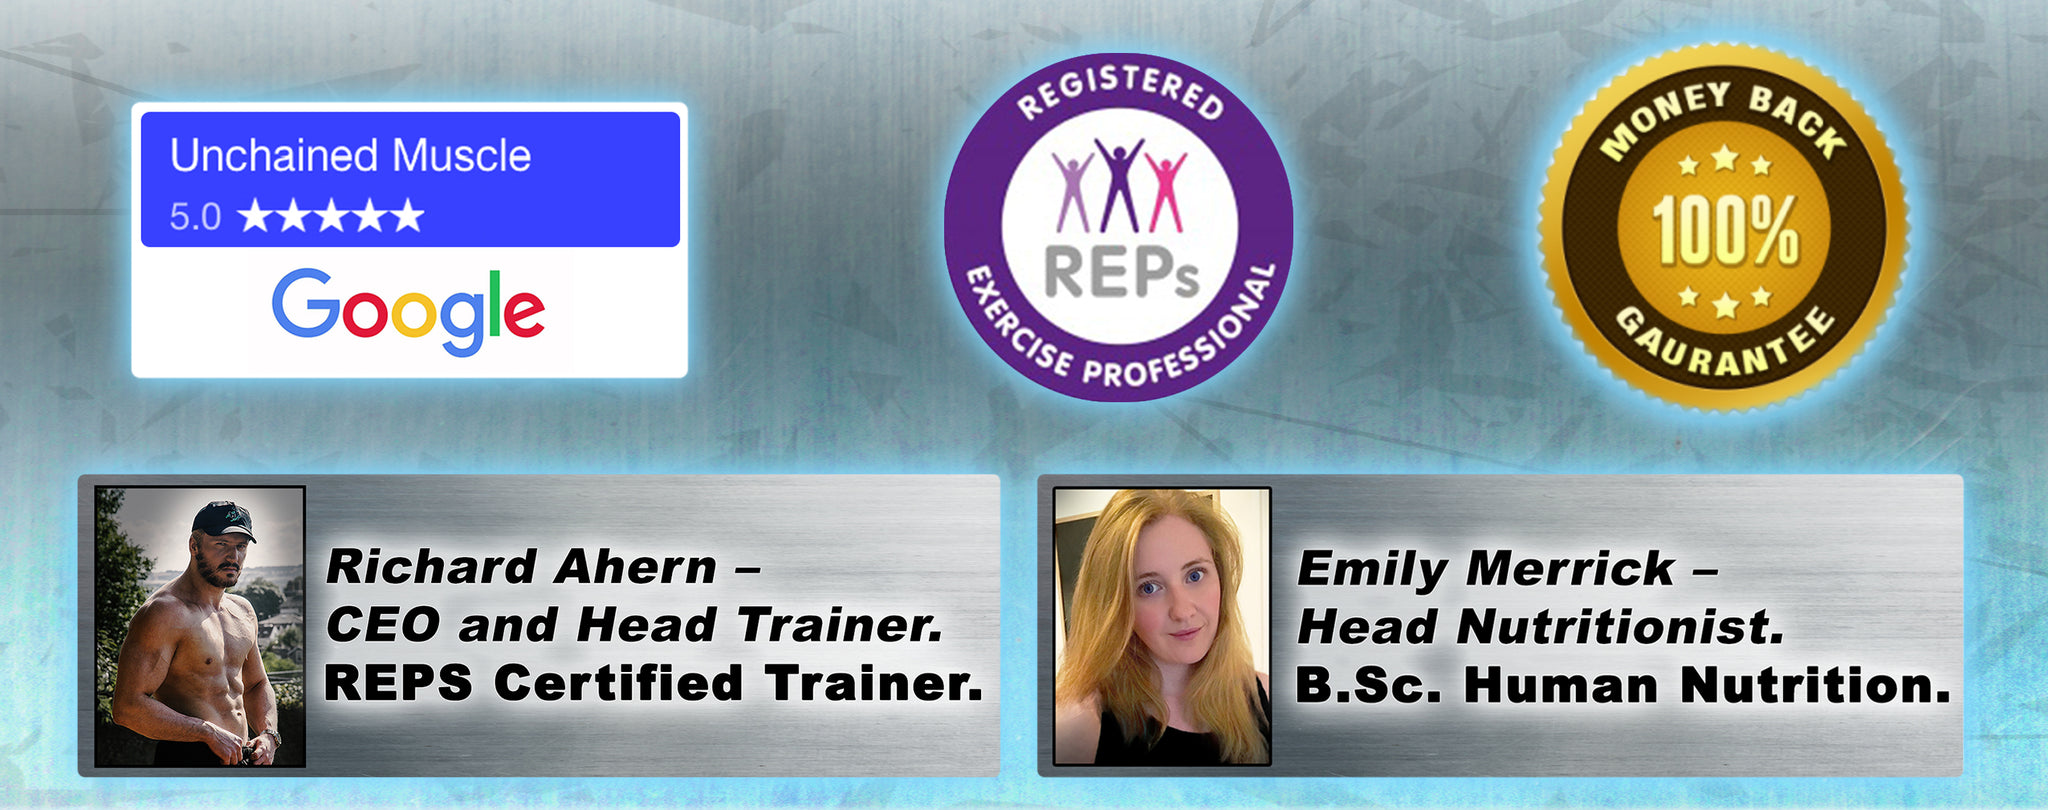 Richard Ahern REPS Certified Trainer. Nutrition Consultant Emily Merrick BSc Nutrition.